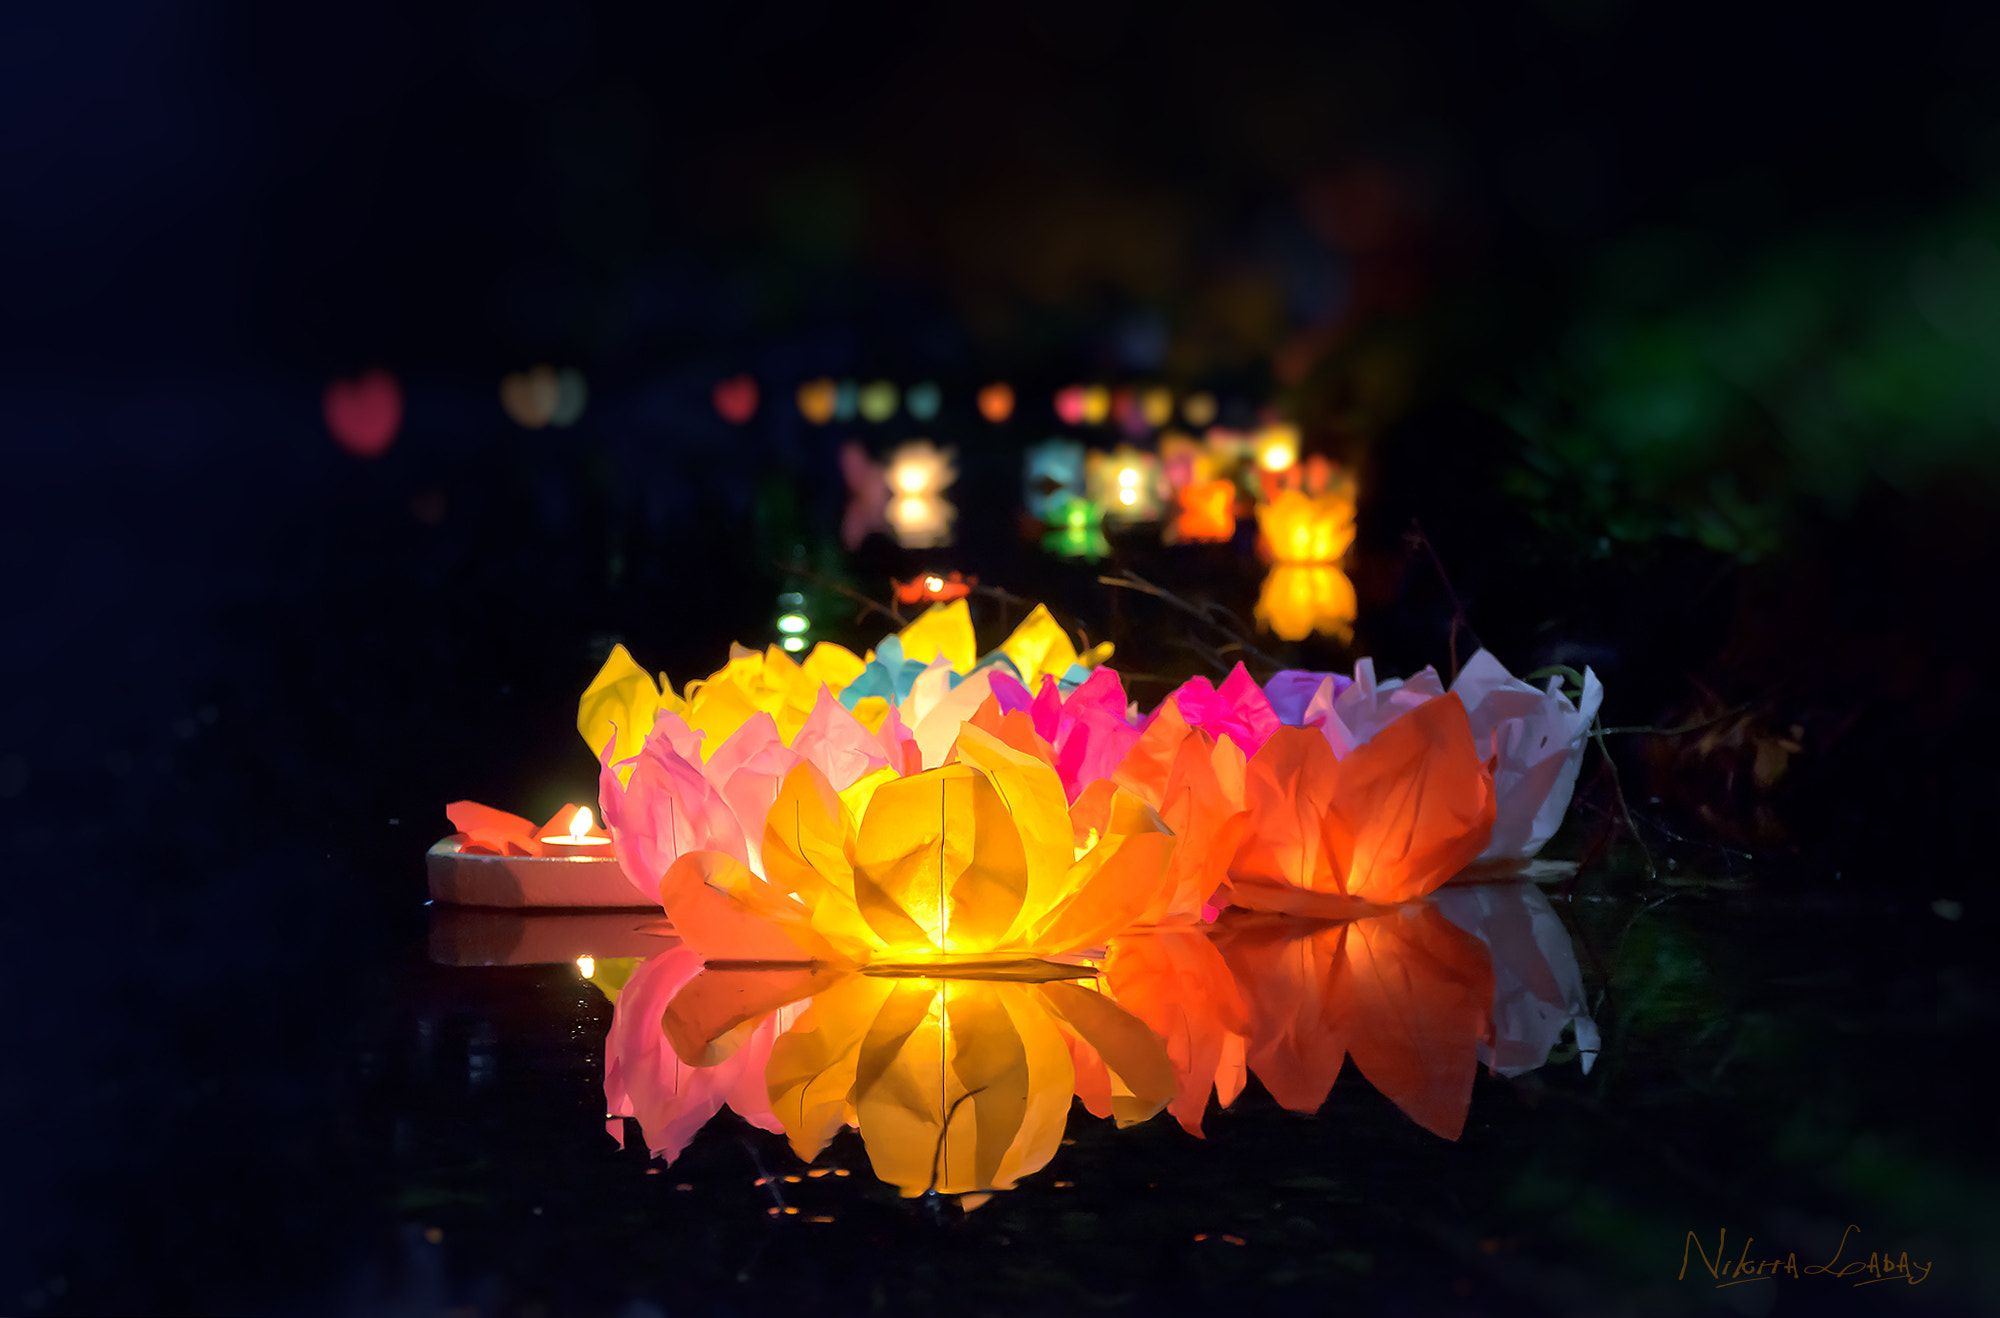 Photograph Water lanterns of wishes by Nikita Labai on 500px